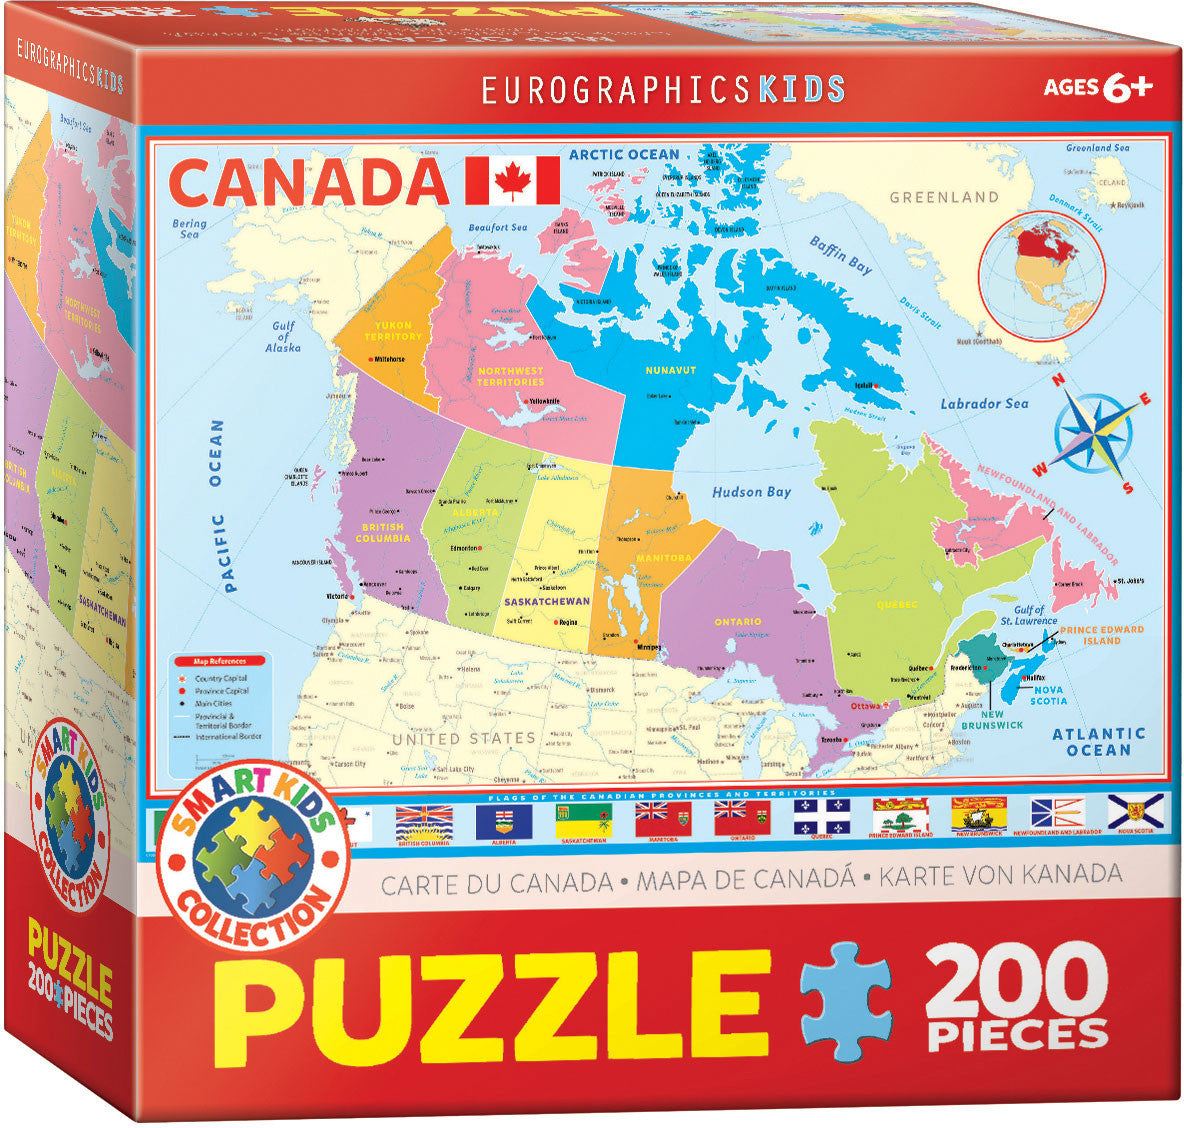 EuroGraphics Puzzles Map of Canada